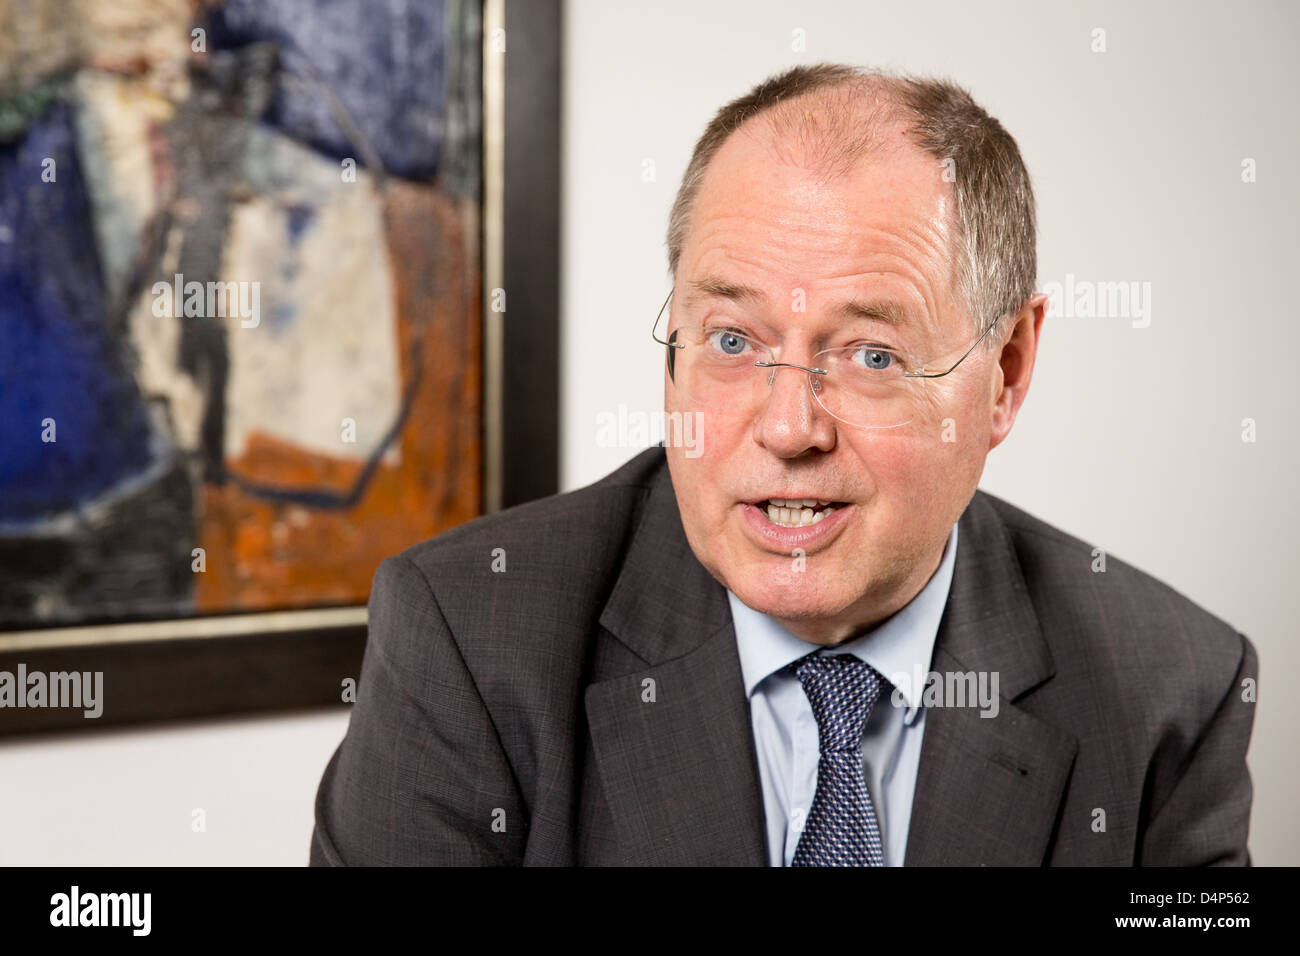 Berlin, Germany, SPD chancellor candidate Peer Steinbrueck - Stock Image